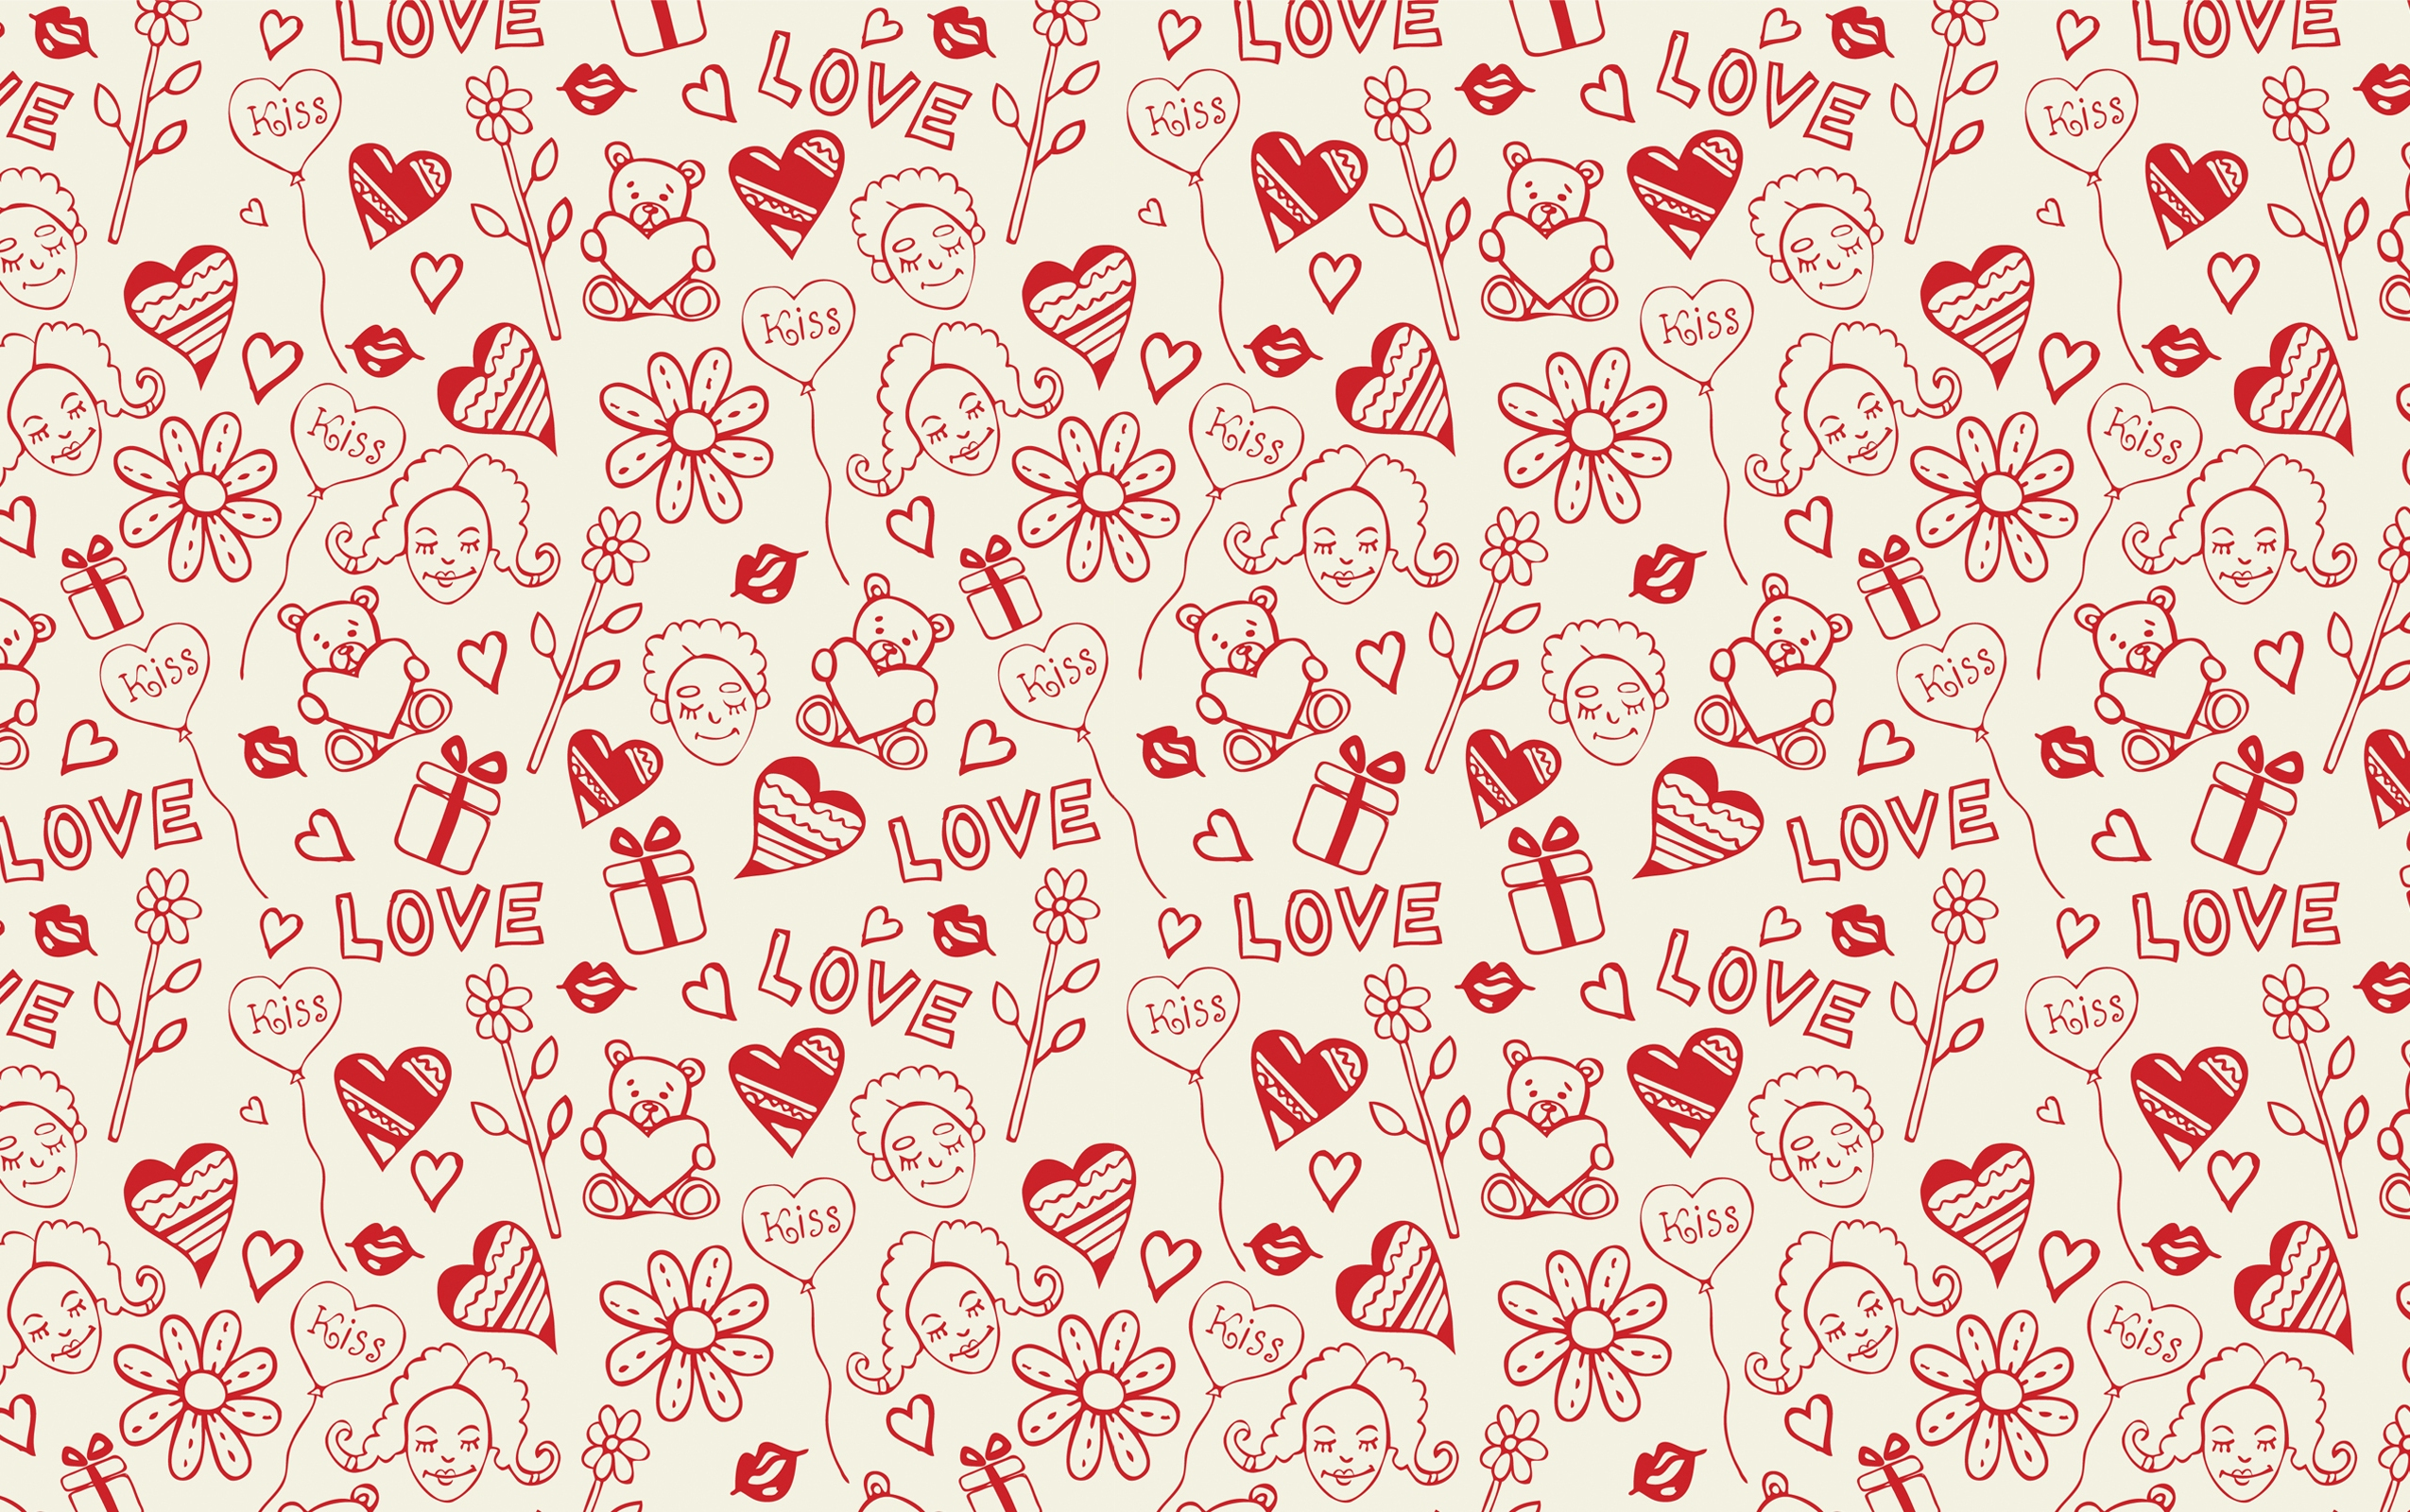 Love Wallpaper Vector : Love Vector Drawings Wallpapers - 2550x1600 - 2963649